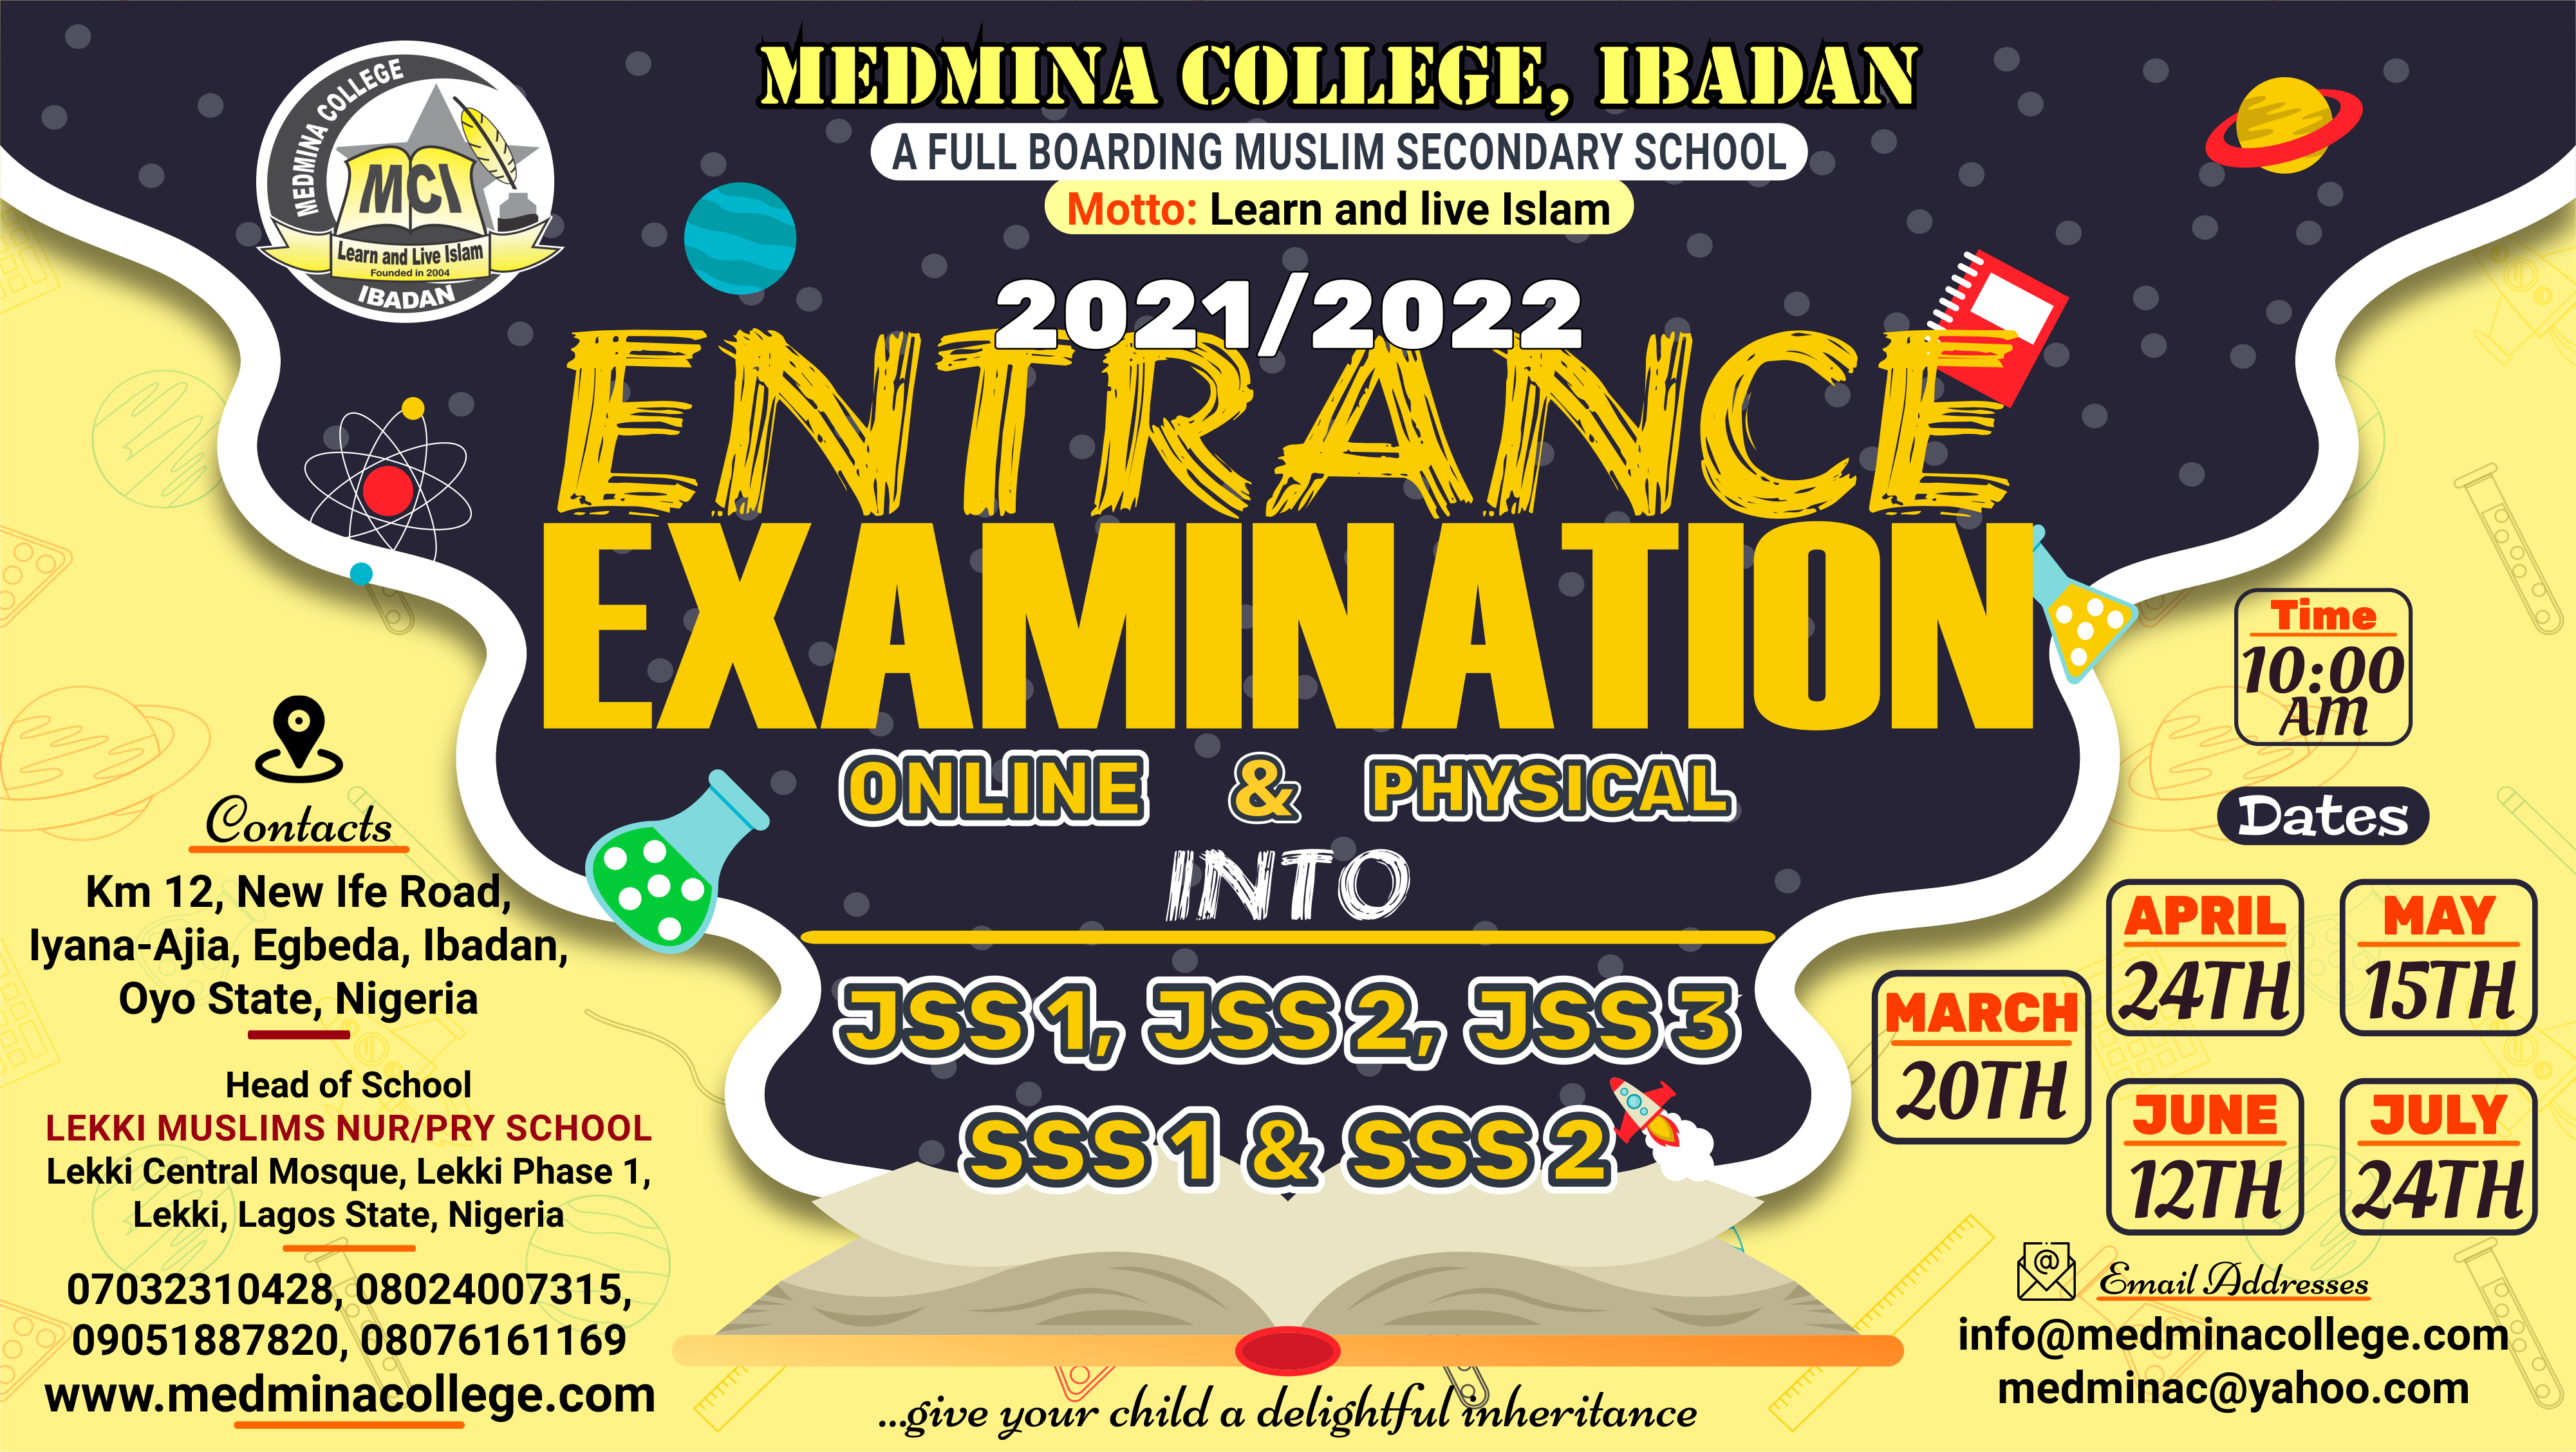 2020/2021 Online Entrance Examination for Admissions